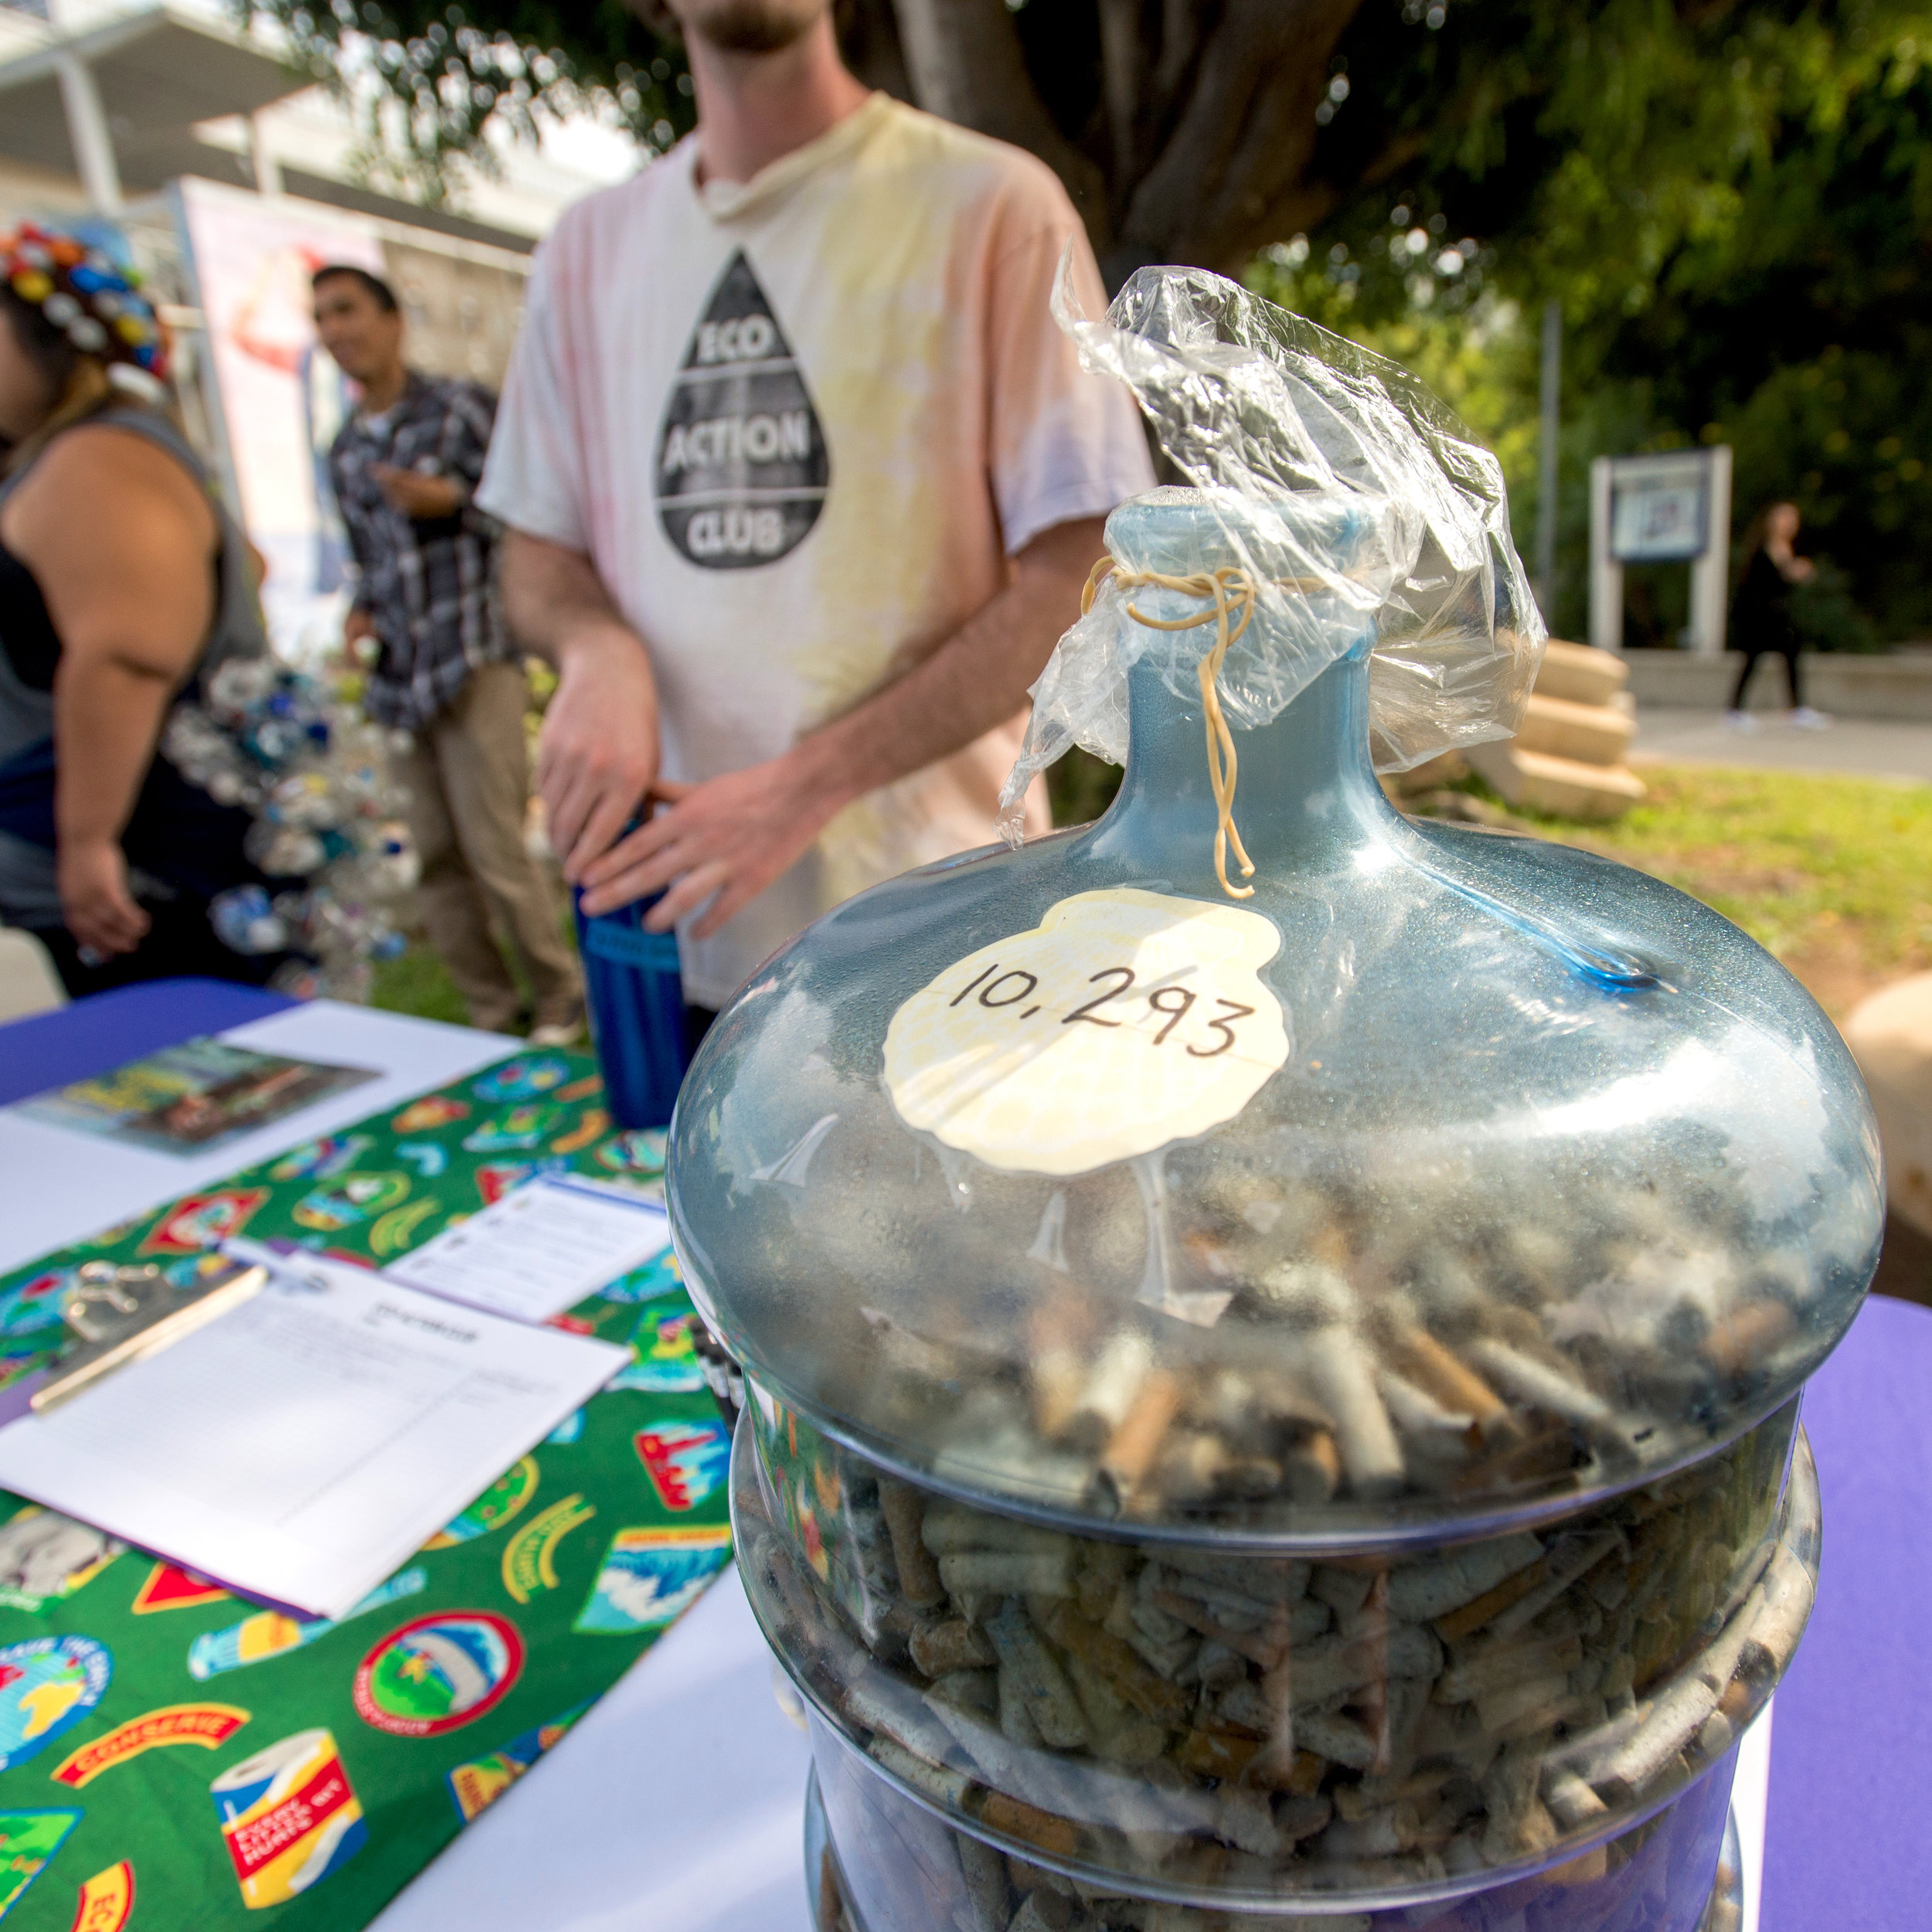 The Eco Action Club displays a water gallon container with the number of cigarette buds filled inside it; which were collected at a beach clean-up, during the Sustainability Week held at Santa Monica College, in Santa Monica, California on October 17, 2017. (Josue Martinez)